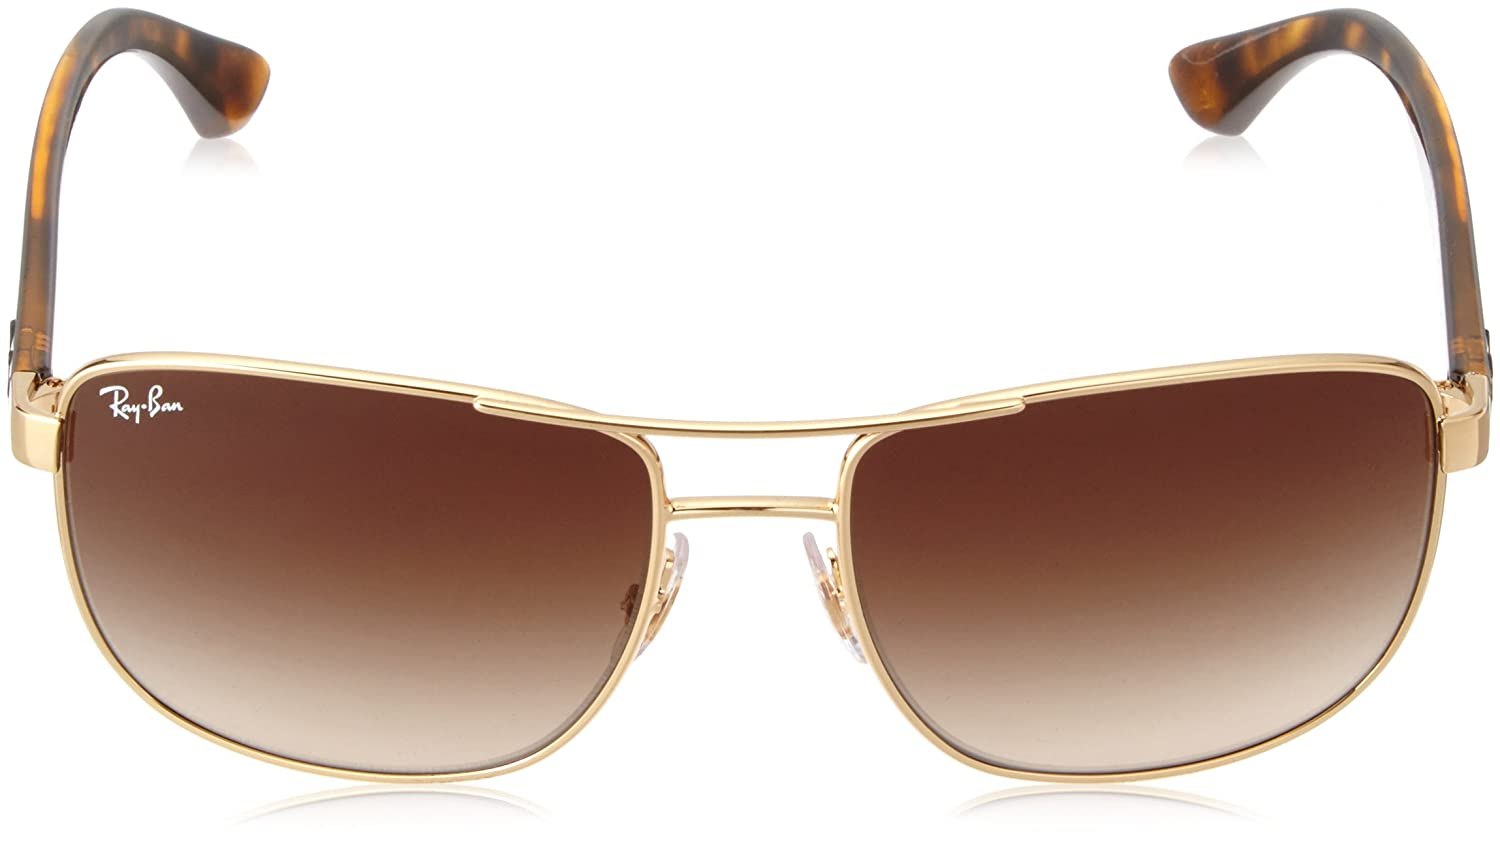 1b91041768 Ray-ban Men Mod. 3533 Sunglasses